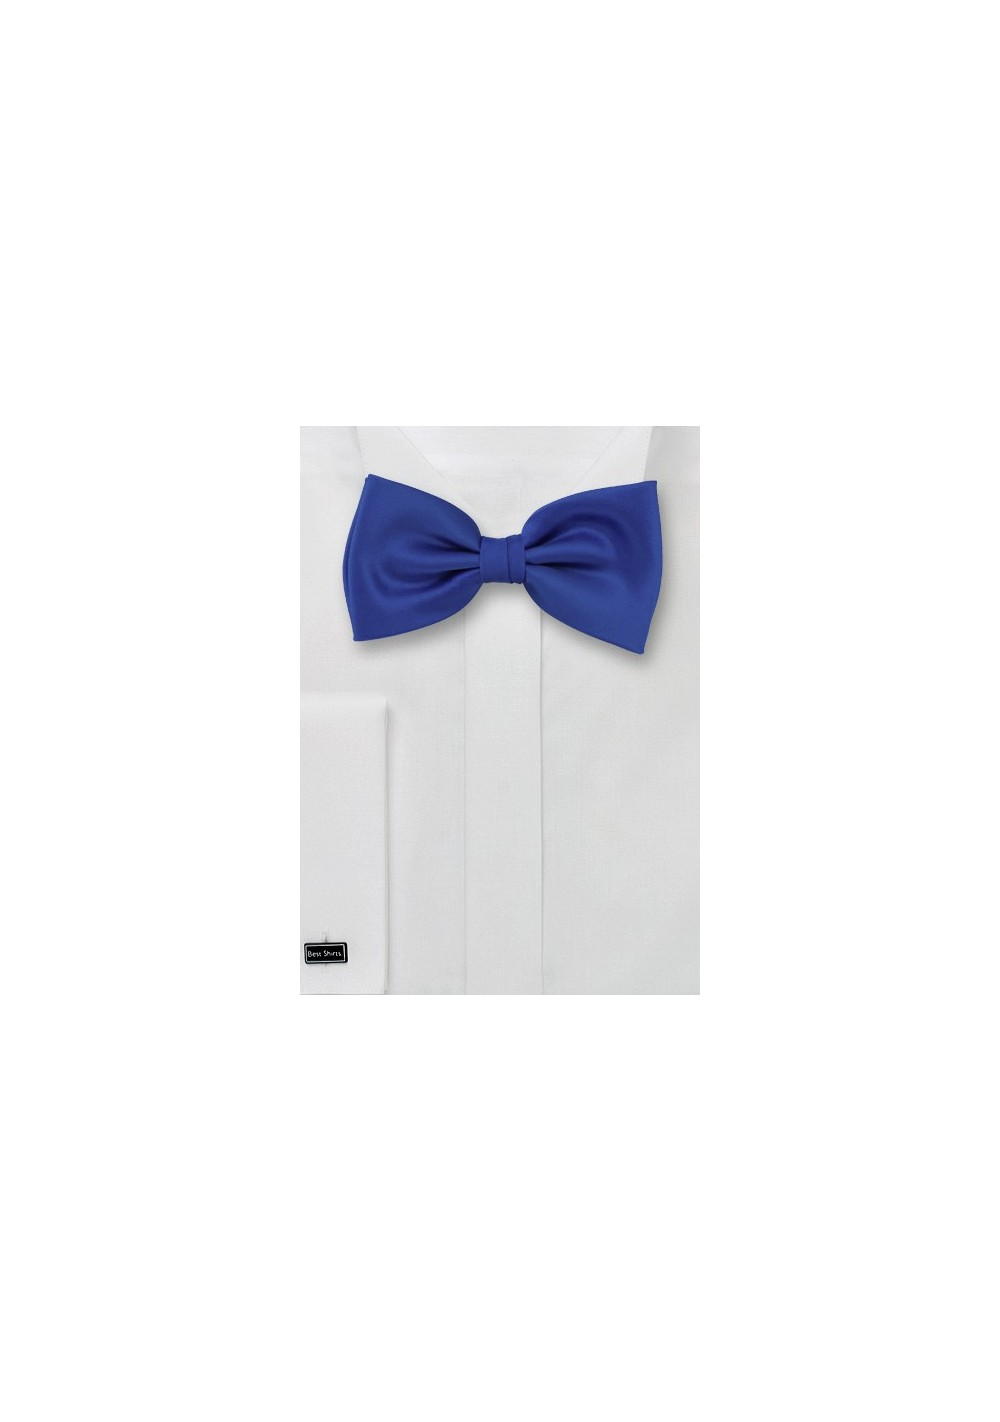 Bright Azure-Blue Men's Bow tie